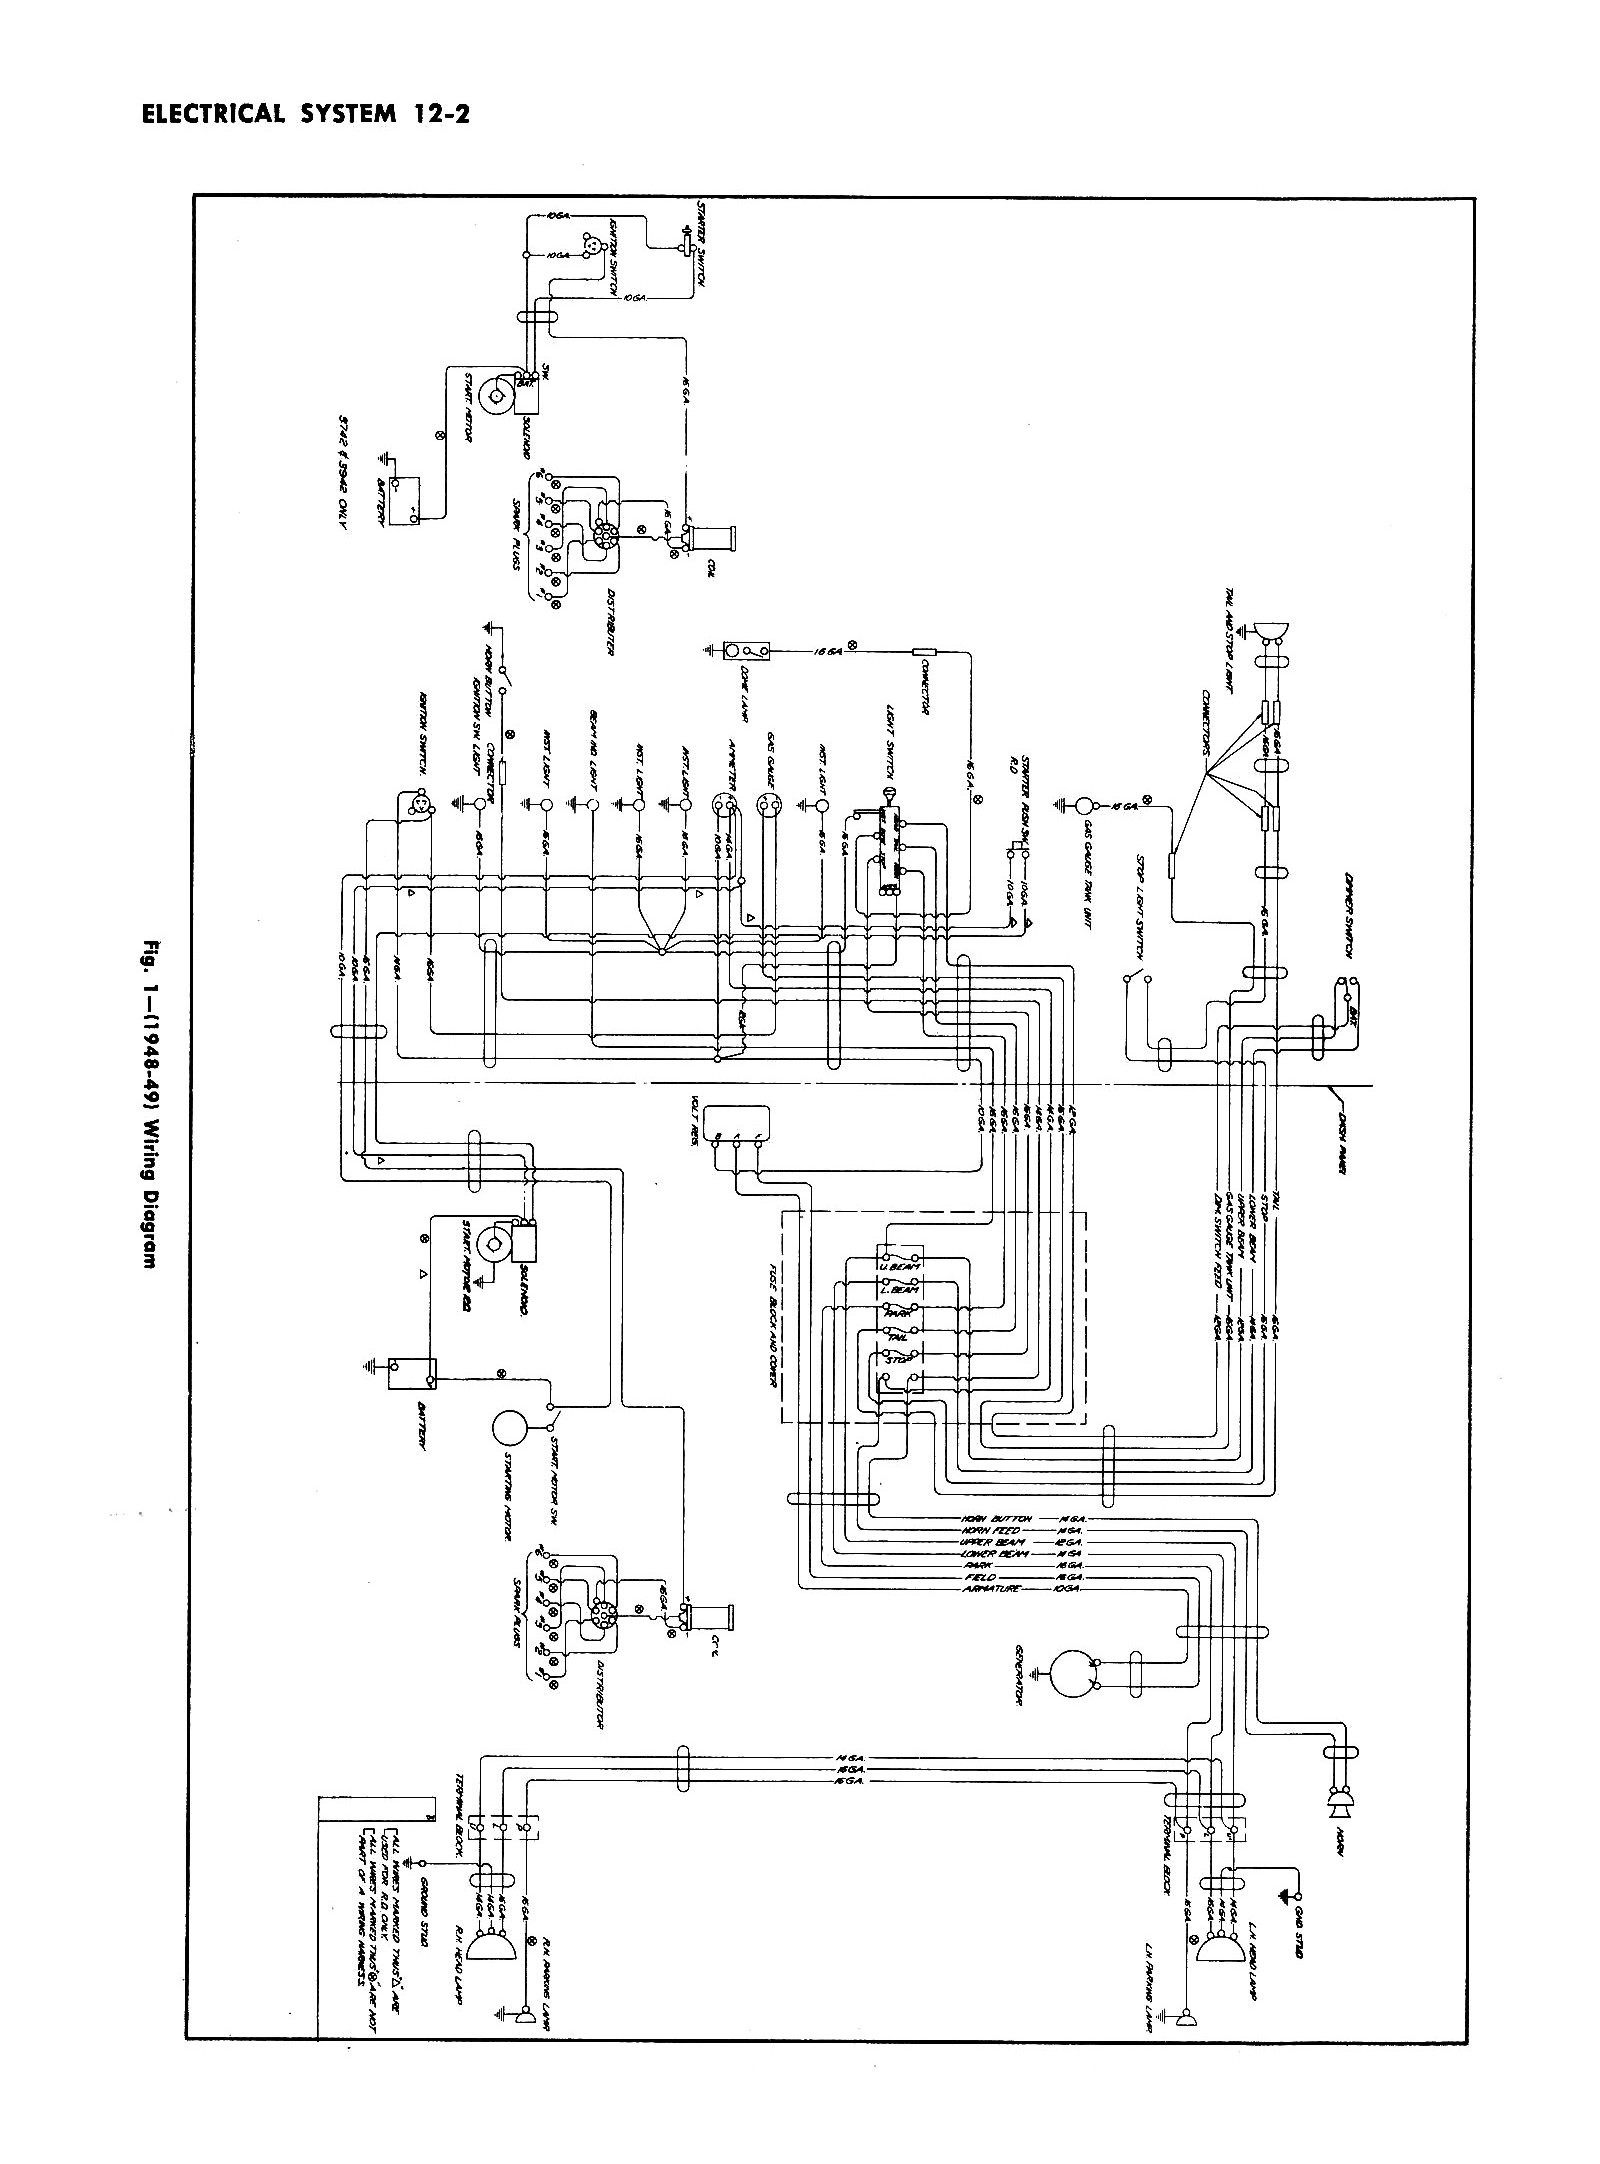 1946 chevy wiring diagram 1946 wiring diagrams